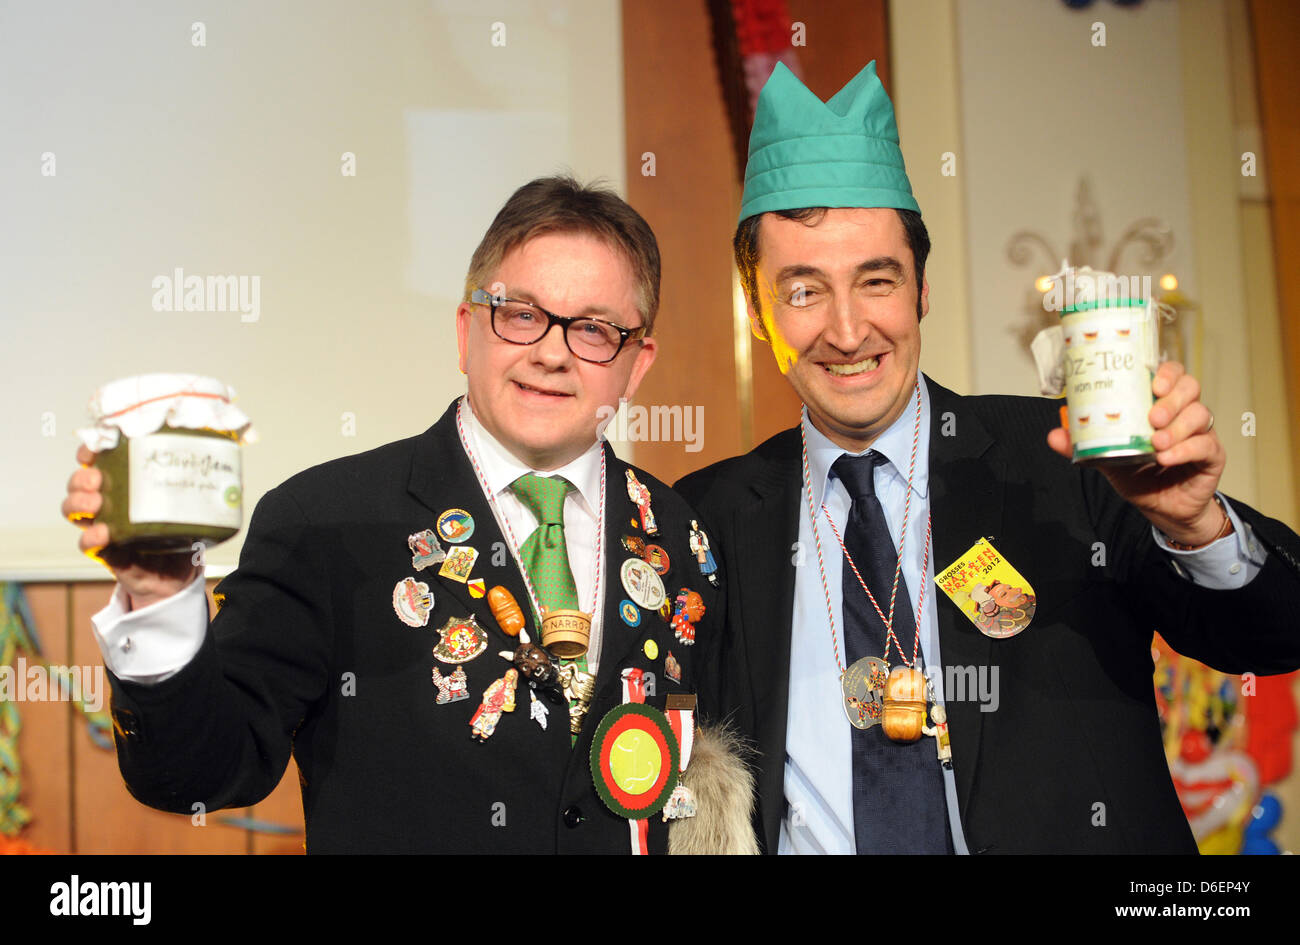 Federal chairman of the Green Party Cem Oezdemir (R) wears a green hat during the presentation of the Golden Fool's - Stock Image